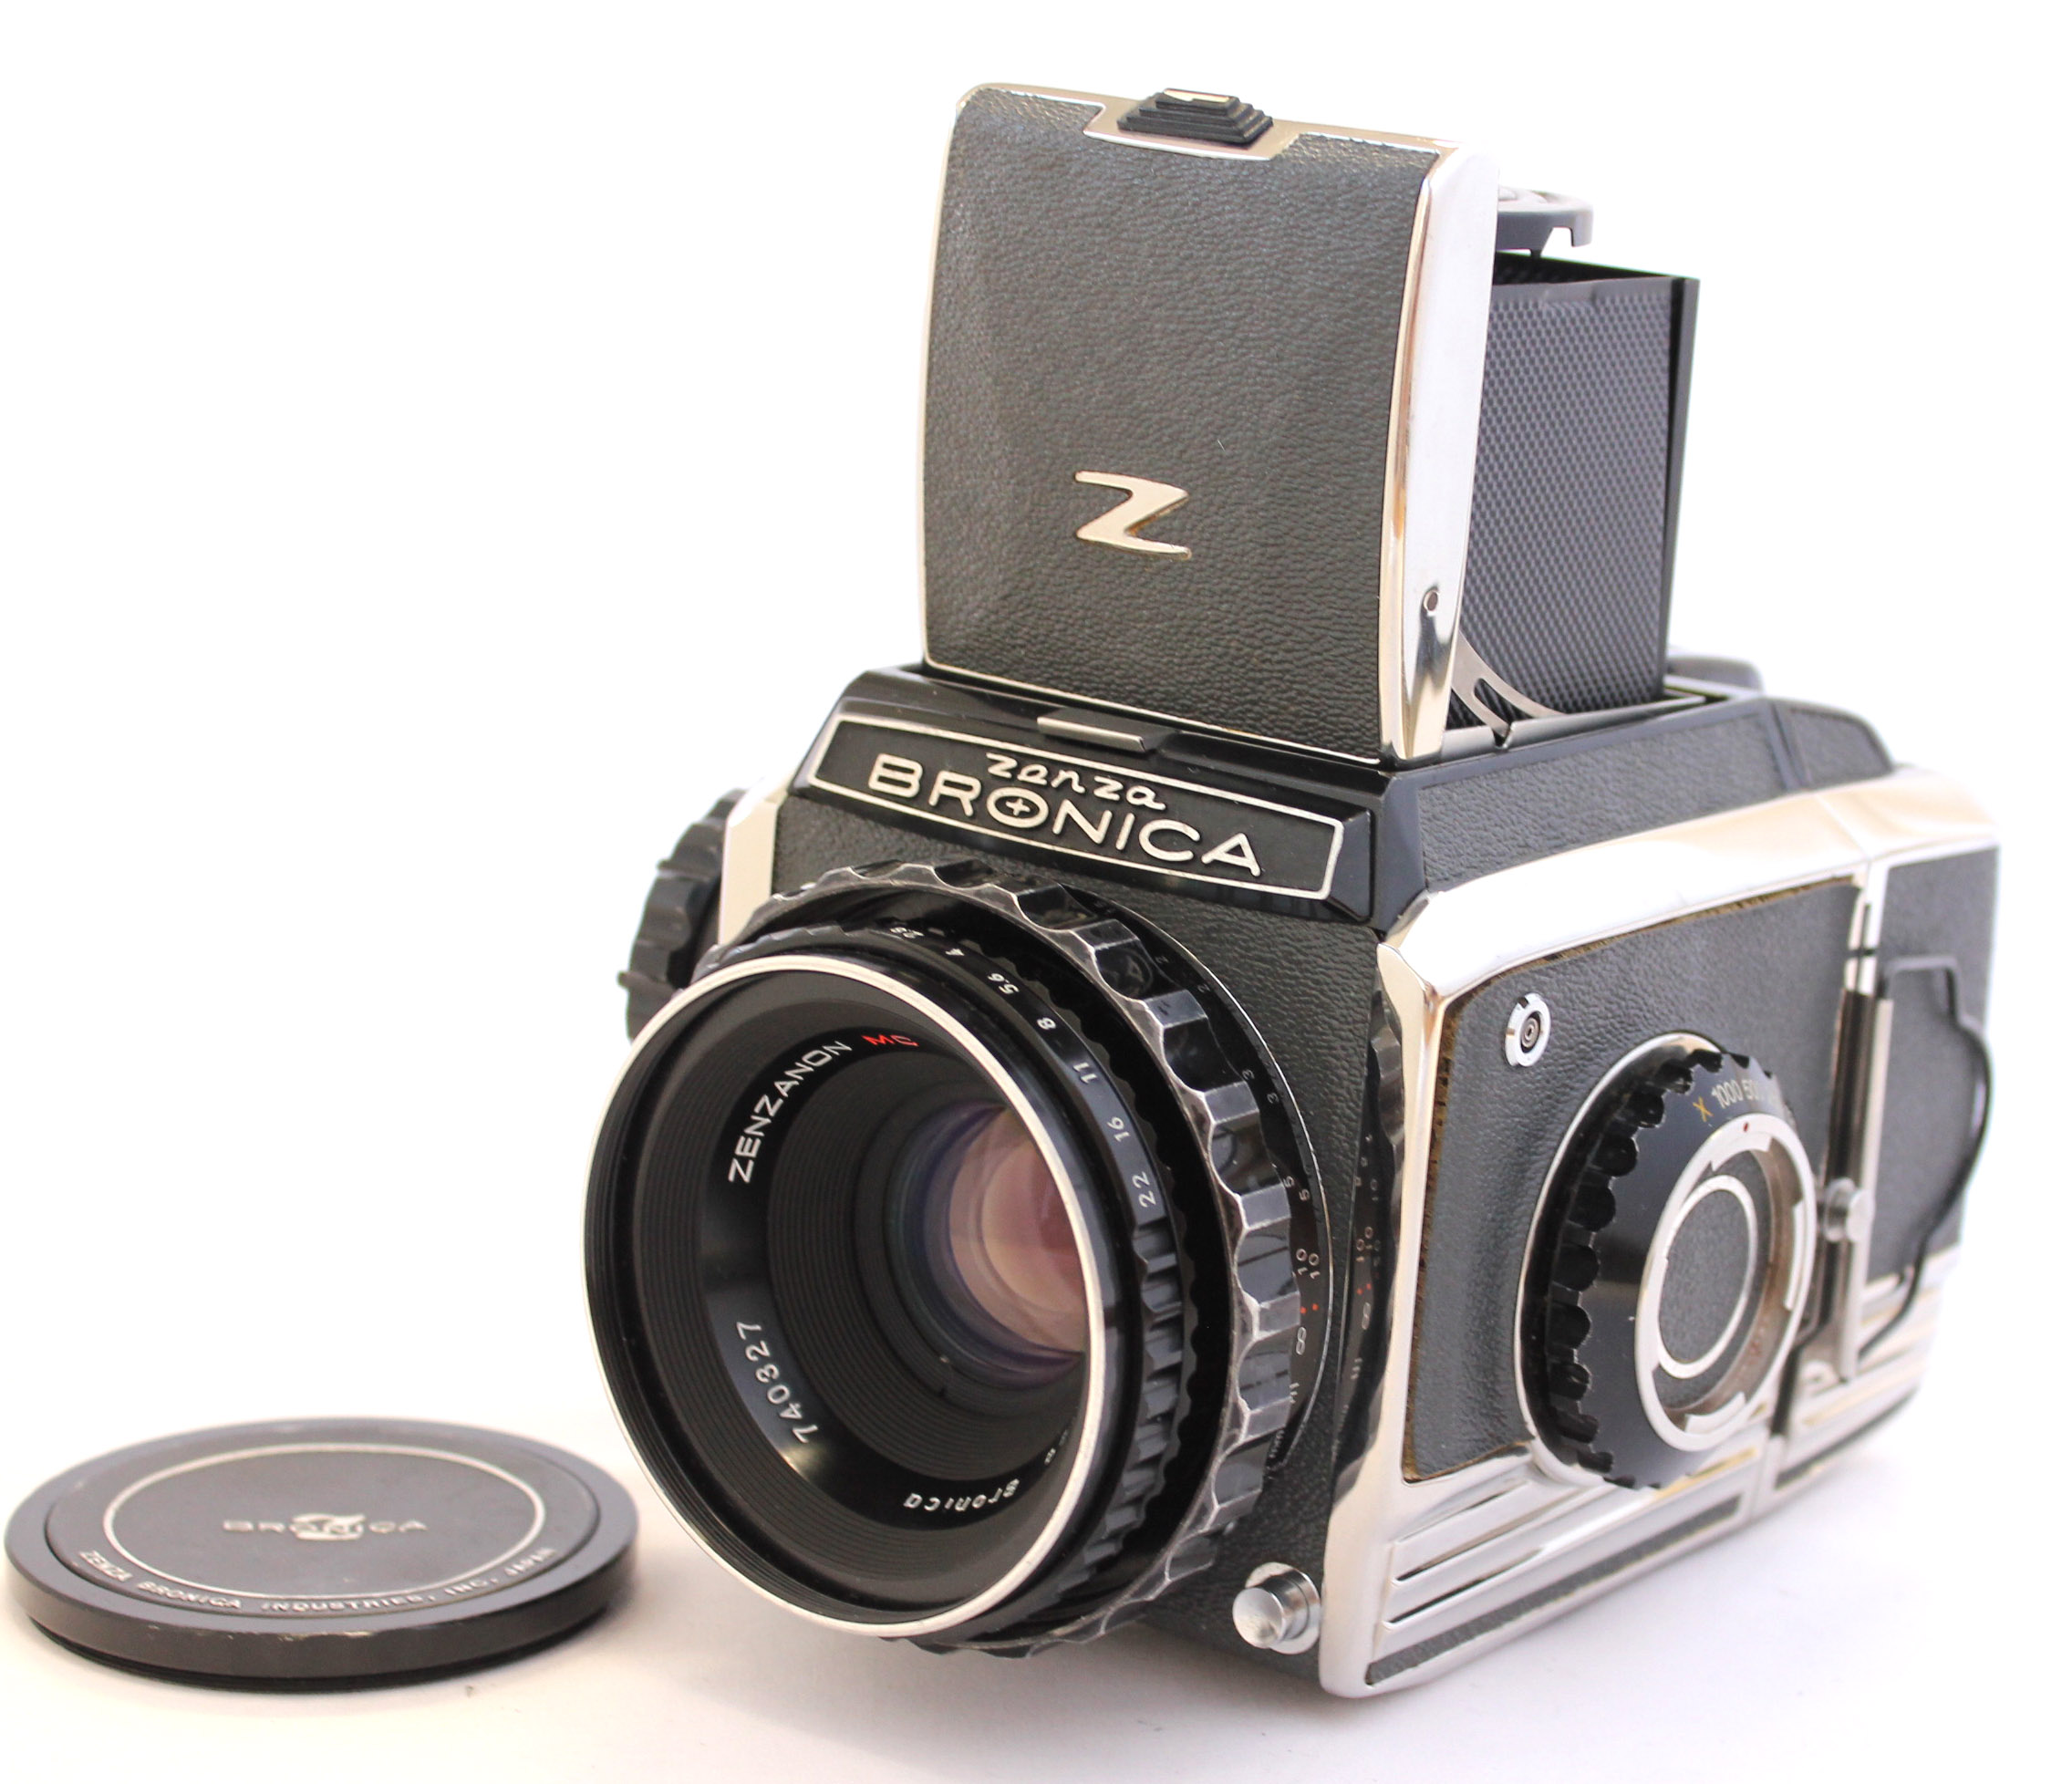 Zenza Bronica S2A Final Model (S/N CB156*) w/ Zenzanon MC 75mm F/2.8 and 6x6 Film Back from Japan